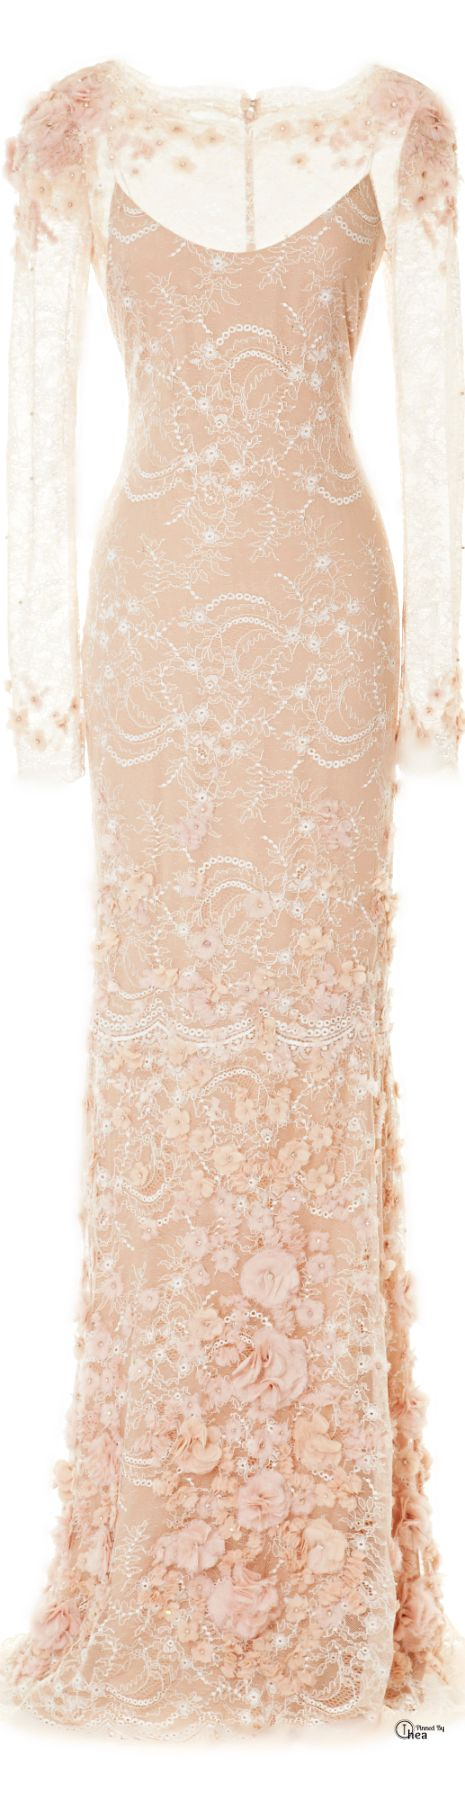 Marchesa ● Resort 2014, Lace Column Gown www.sweetminerals.com/carolborrelli The perfect make-up for your dress, or every day wardrobe!